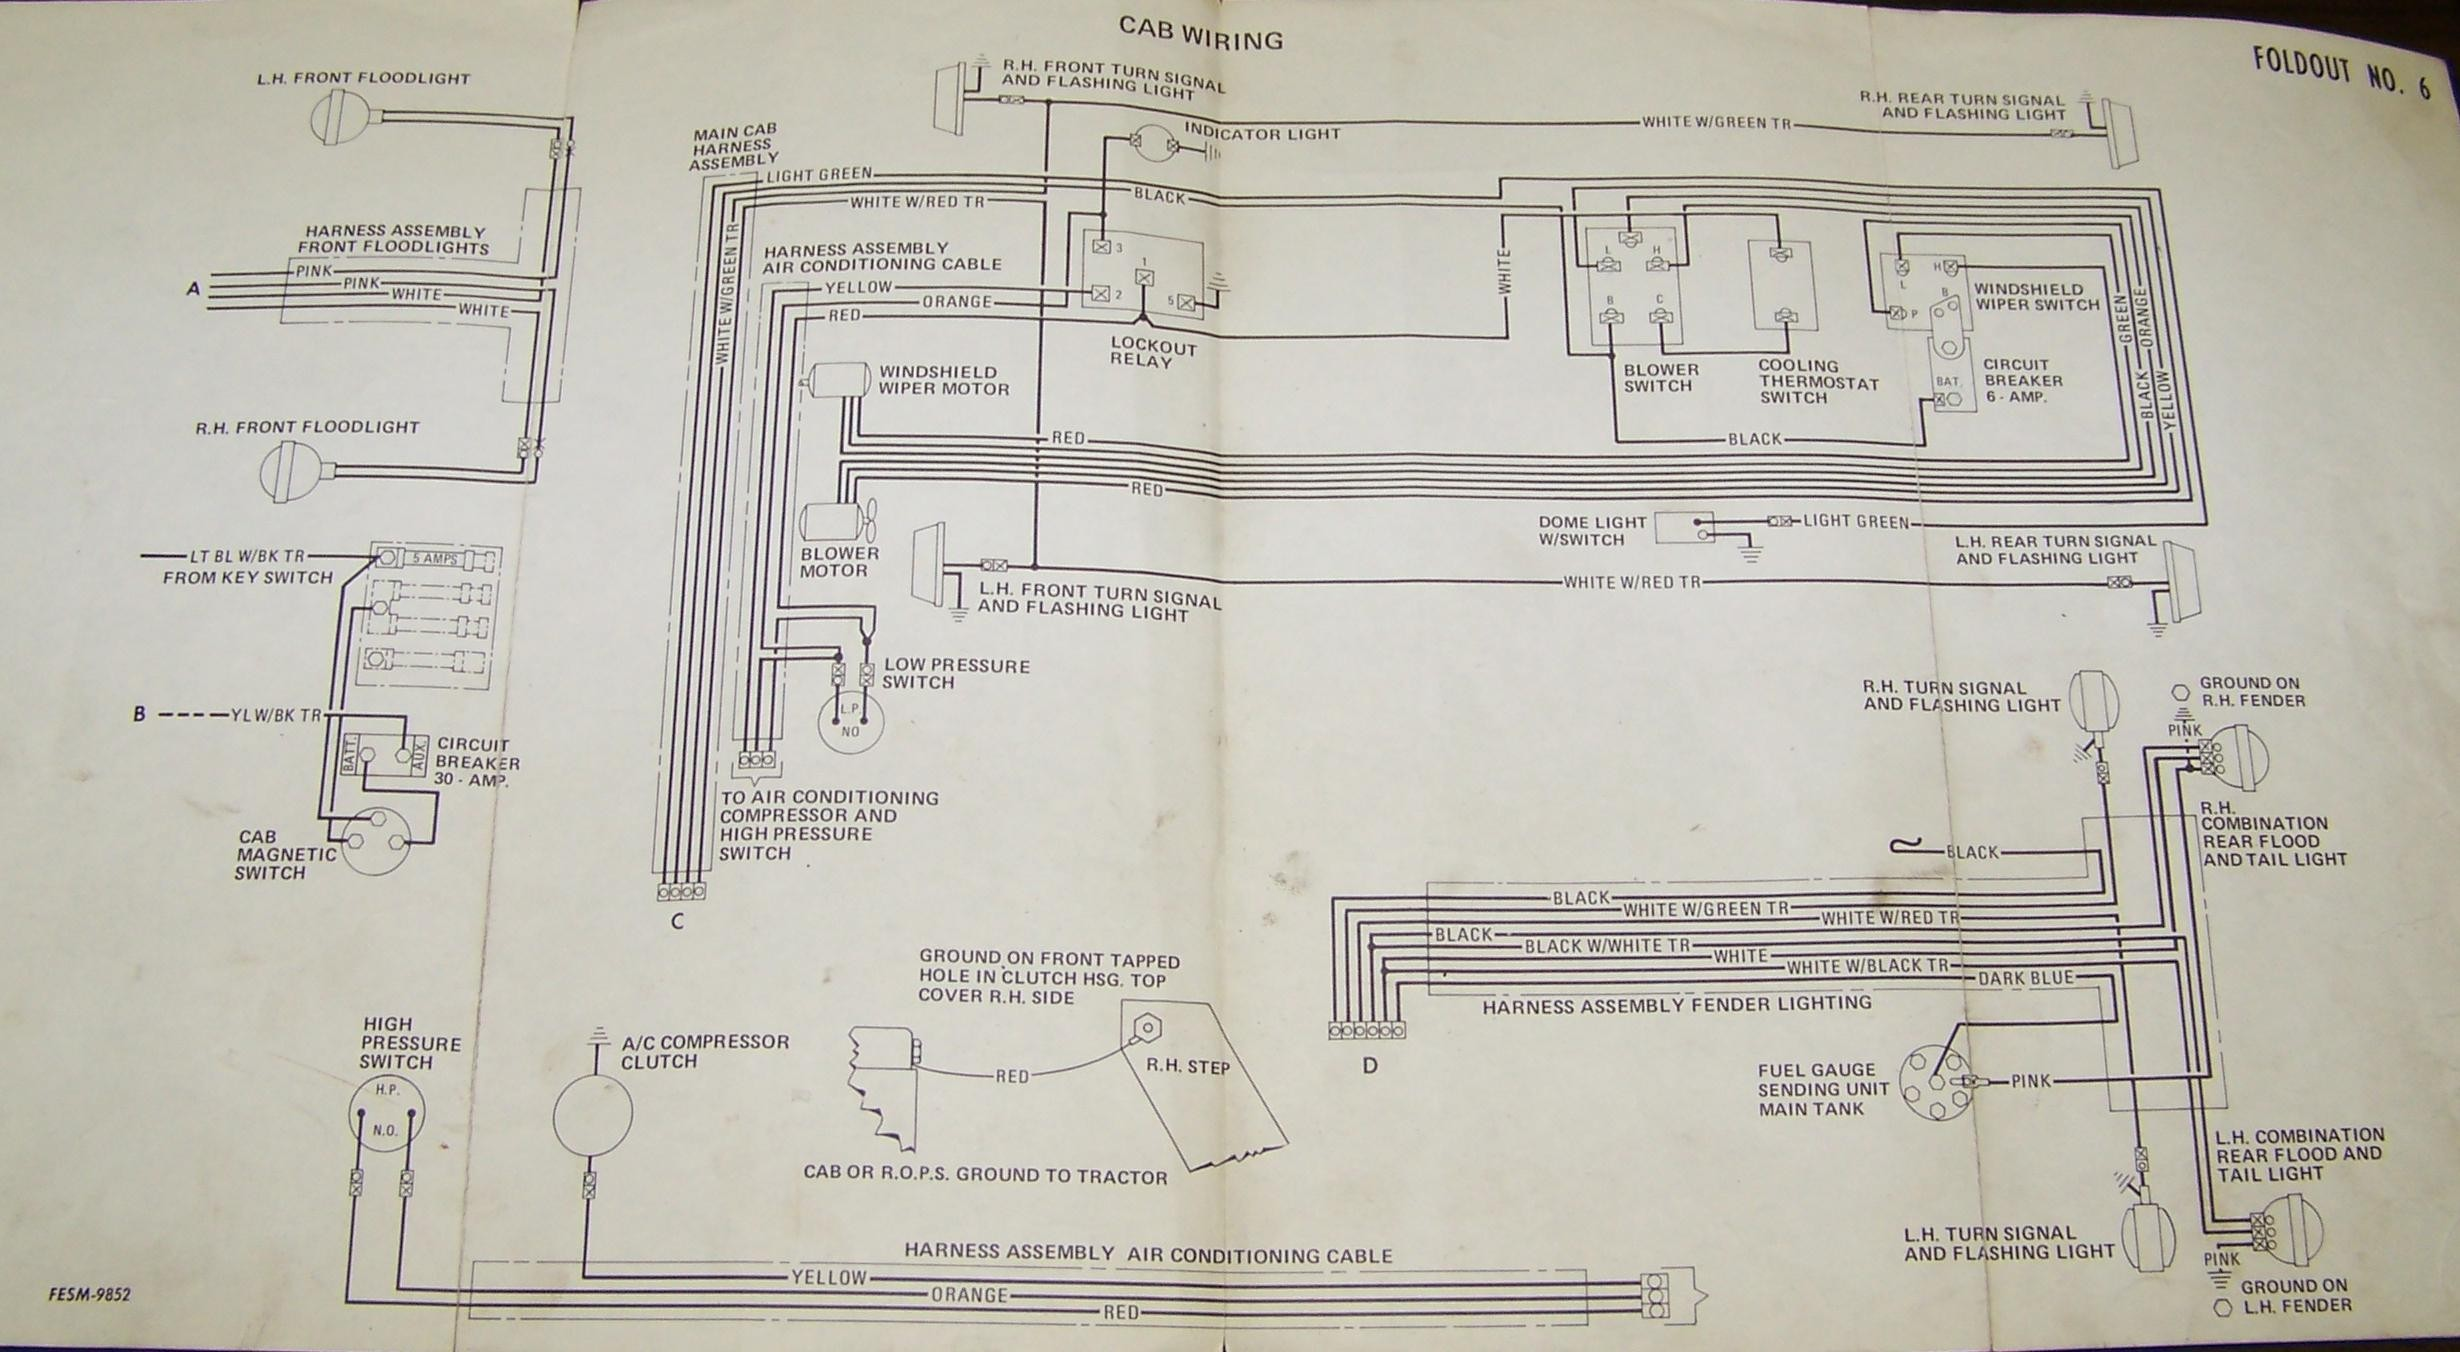 Light Wiring Diagram Ih 504 - Wiring Diagrams Hidden on